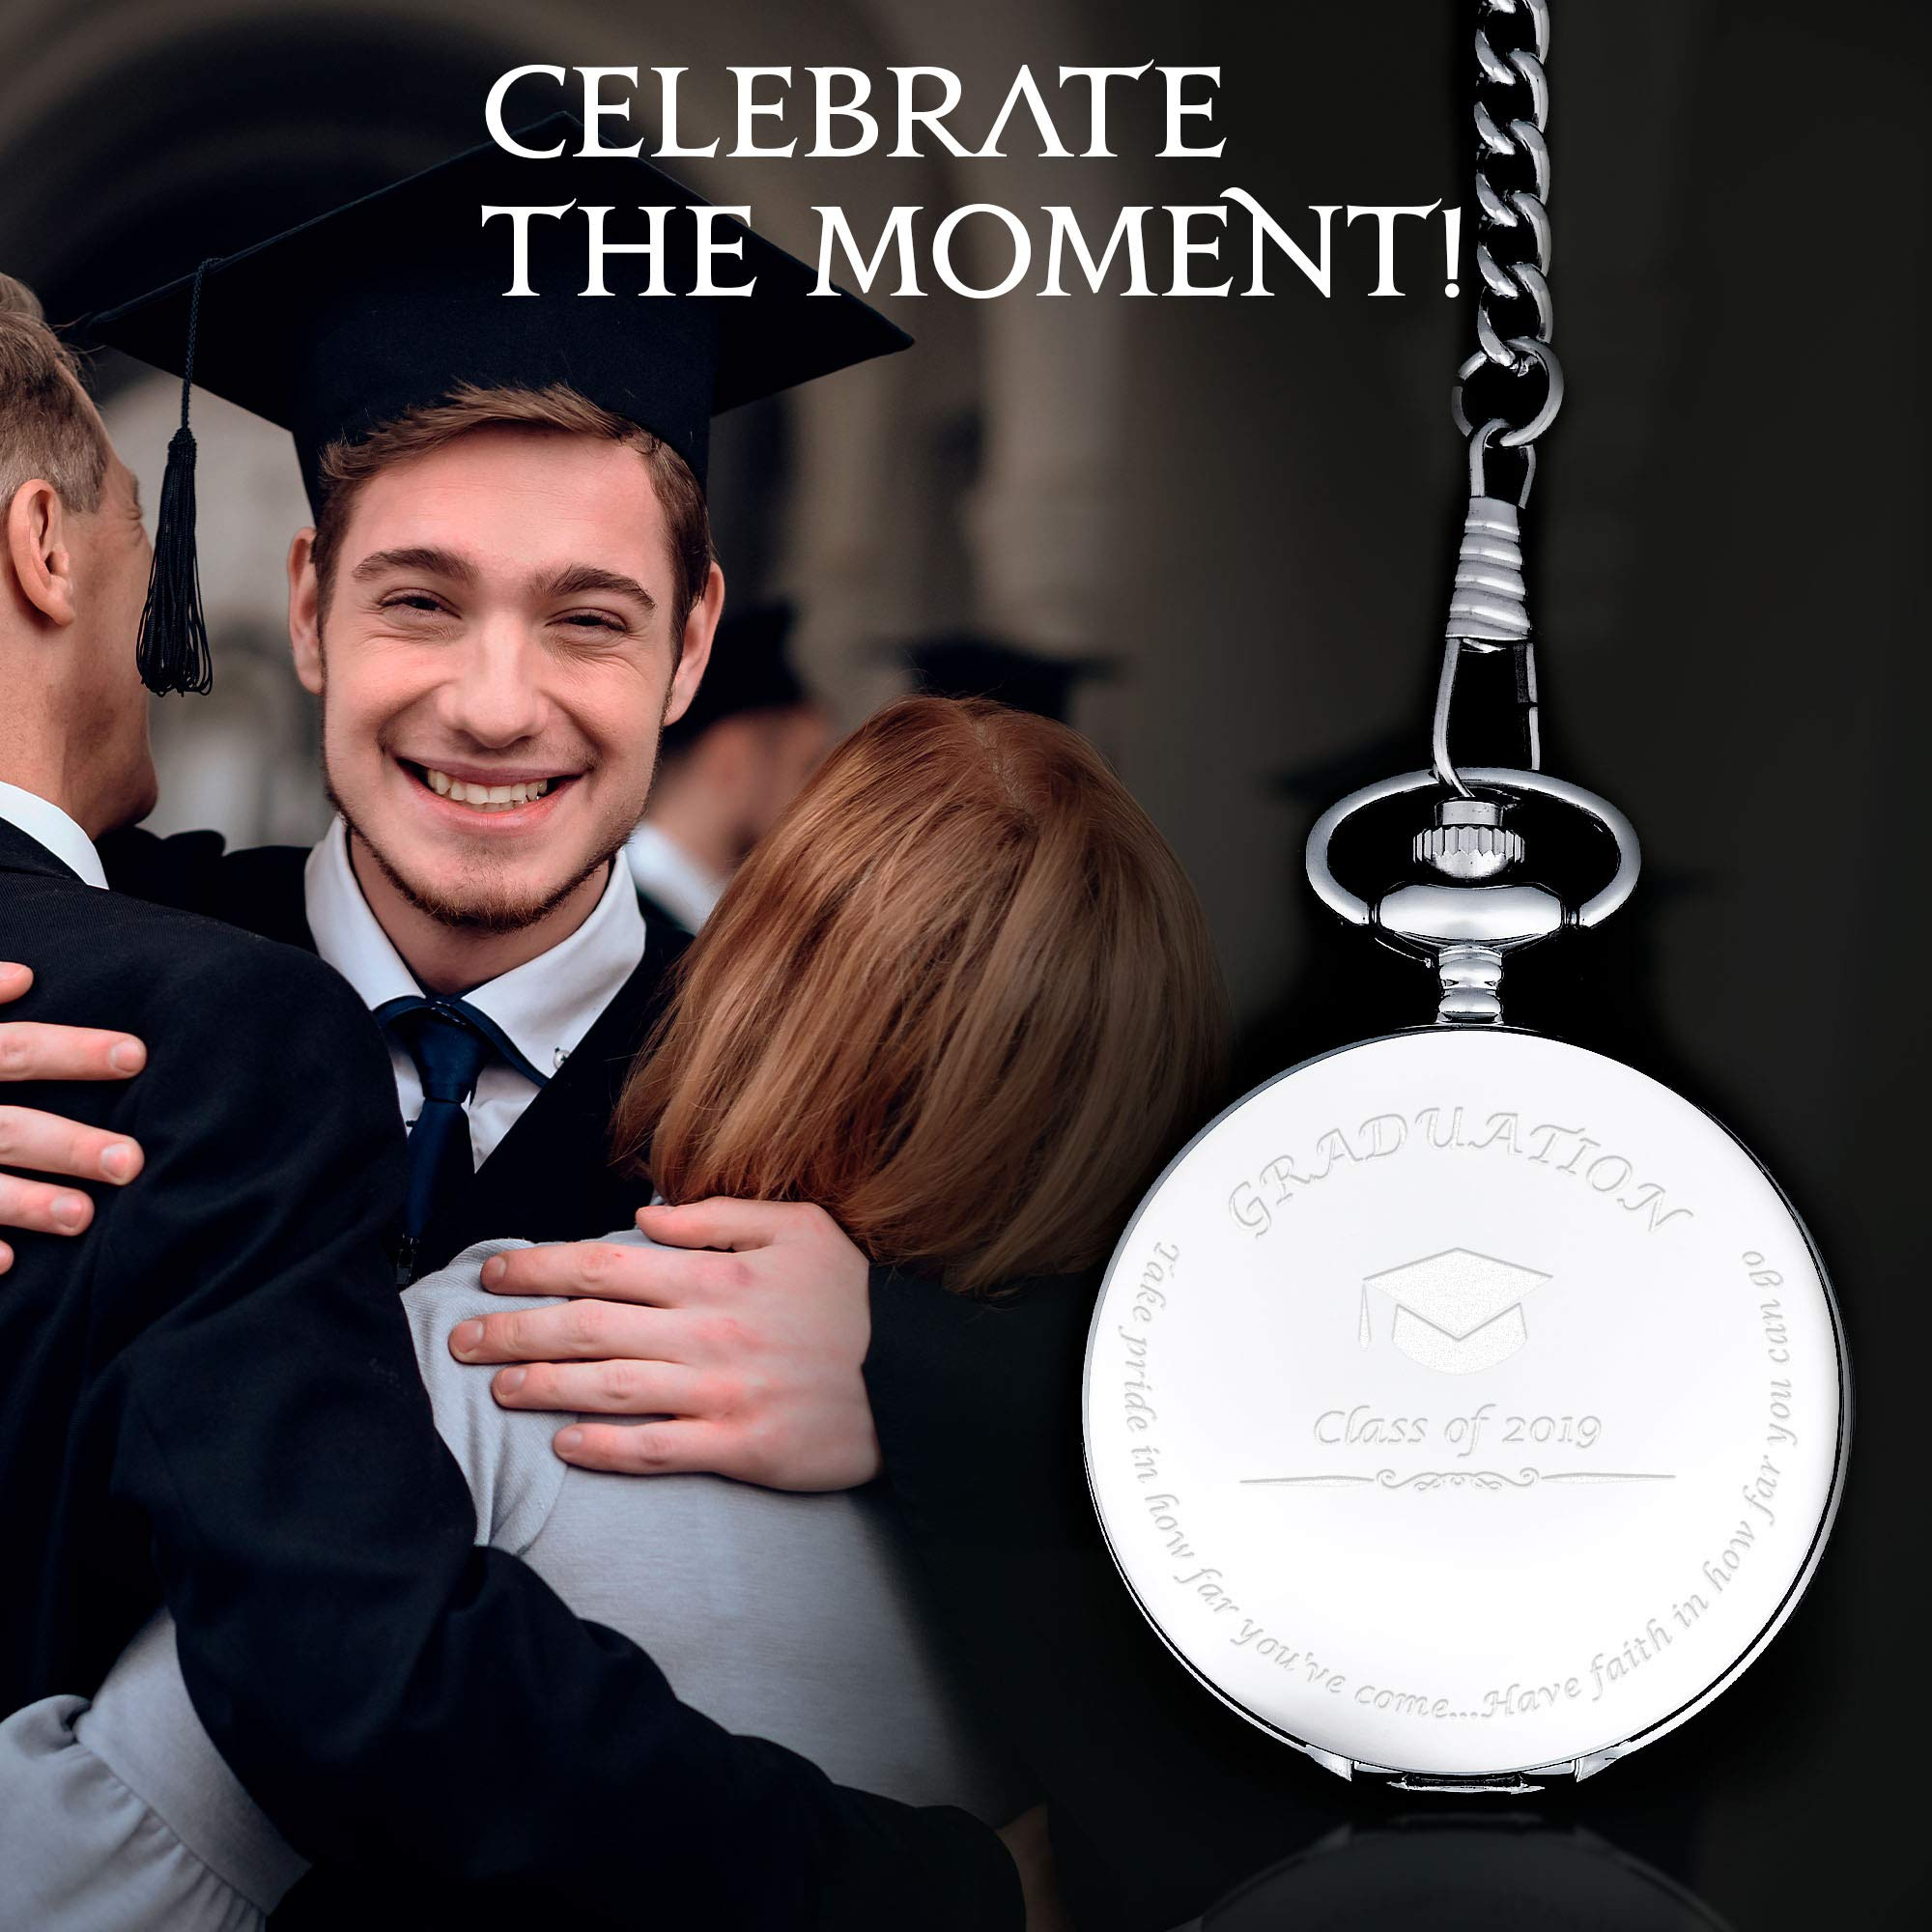 Graduation Gifts for Him - Pocket Watch - Engraved 'Class of 2019' - Perfect College / High School Graduation Gift or Present for Son | Him in 2019 by FREDERICK JAMES (Image #3)